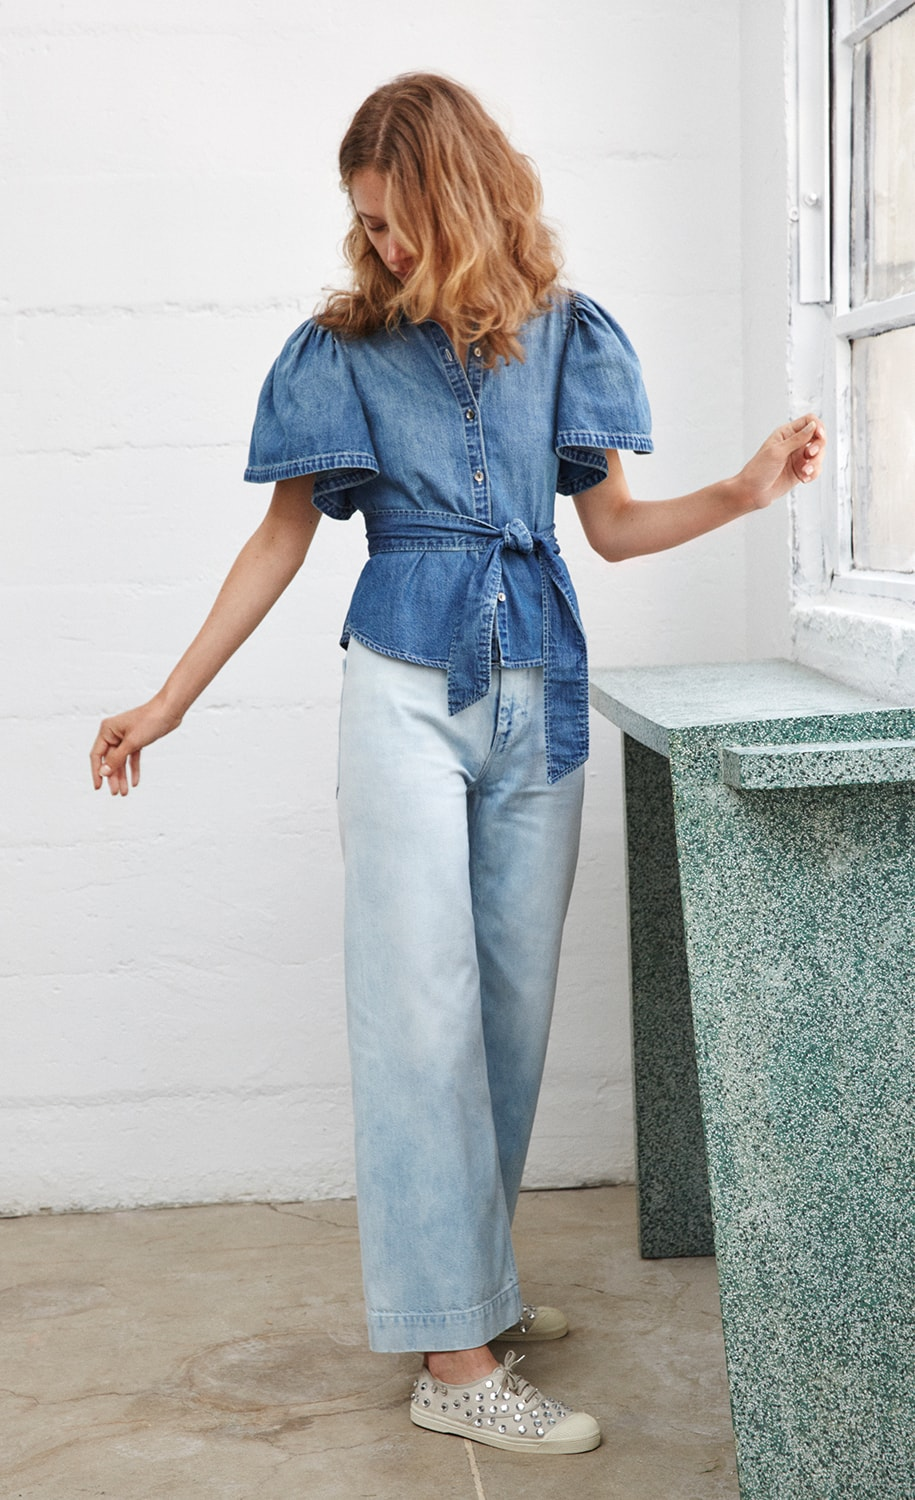 La Vie Denim Top